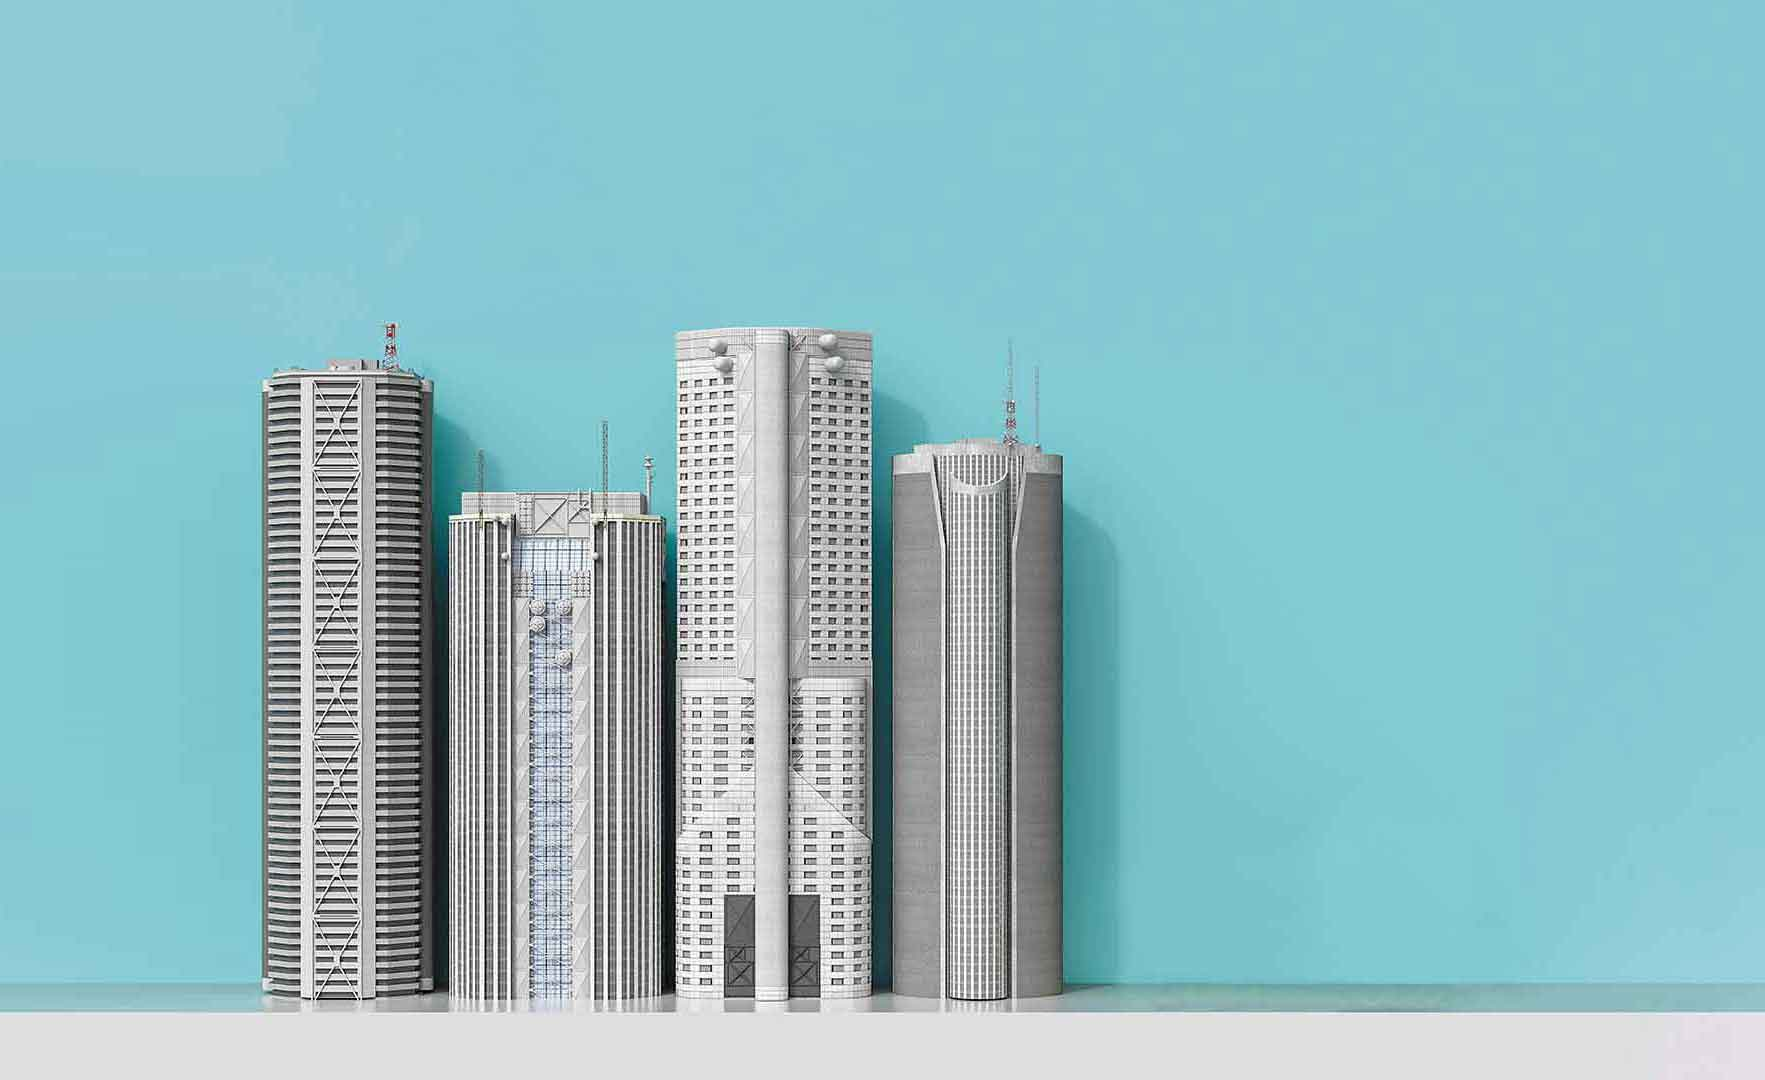 Digital illustration of tall buildings